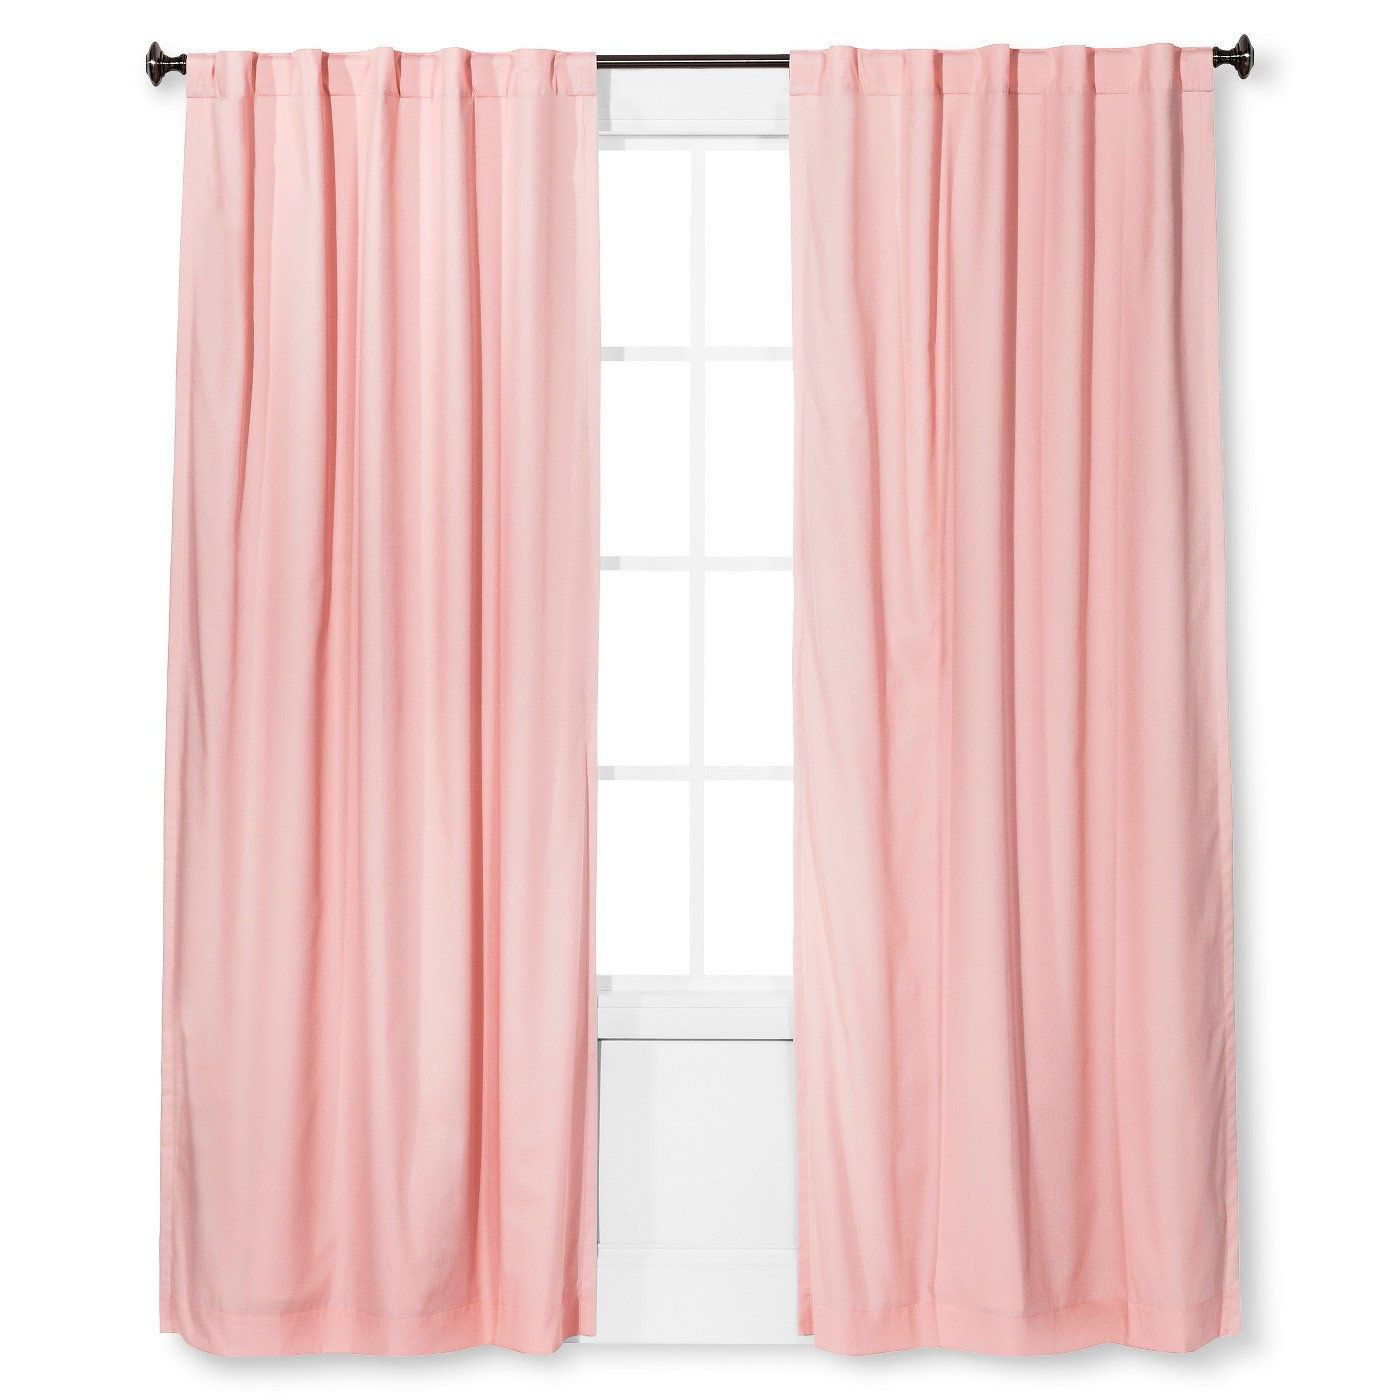 Decorinnovation Mix Match Voile 84 Blackout Window Curtain